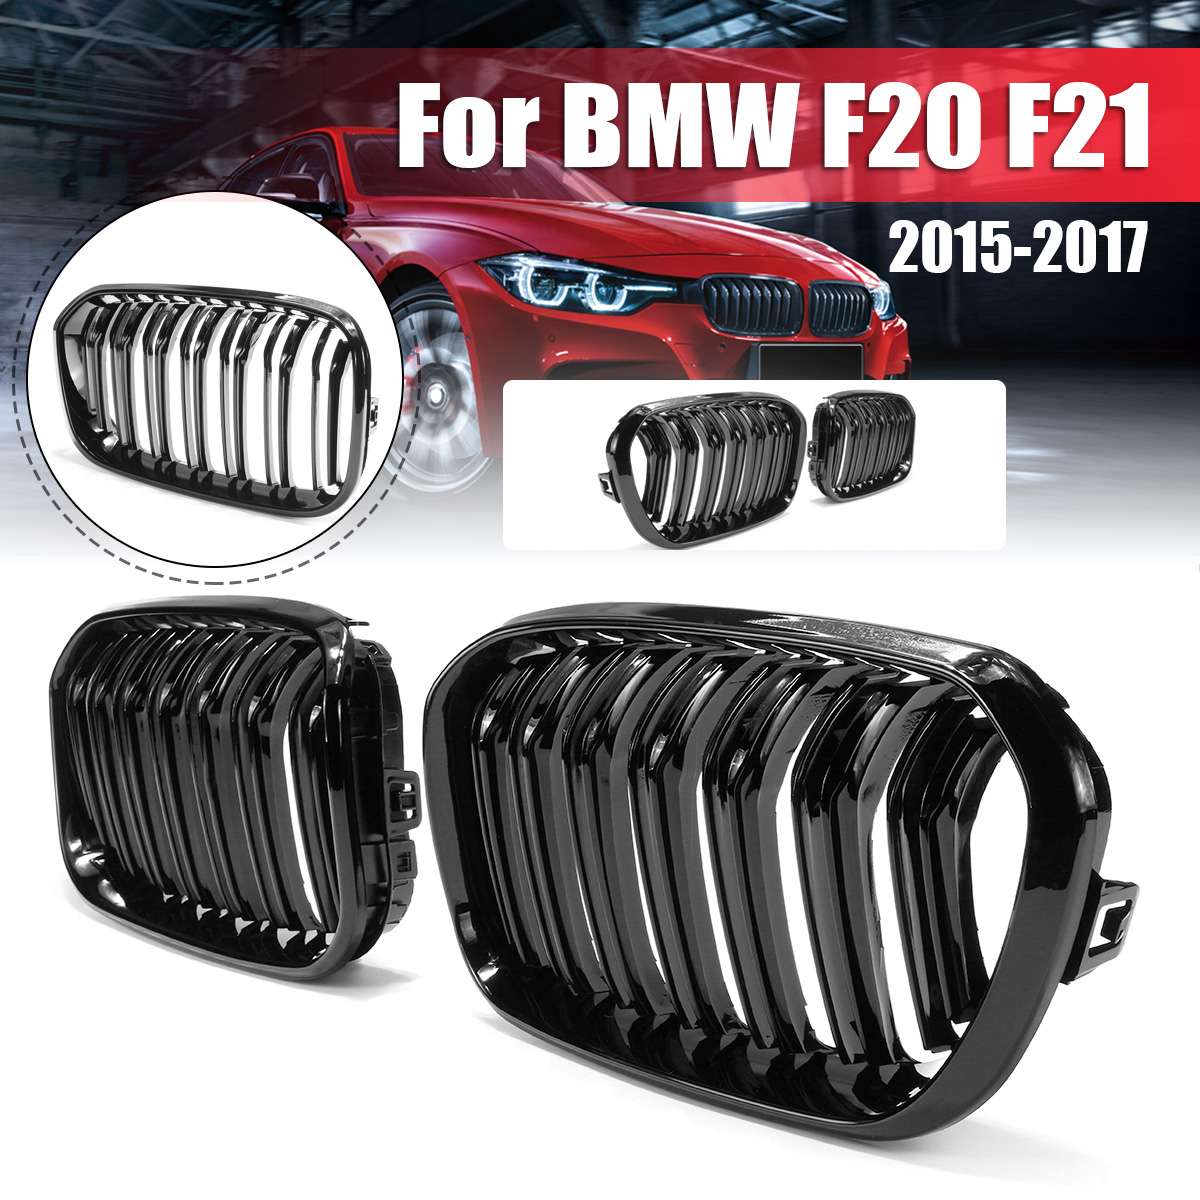 For BMW F20 F21 1 Series 2015 2016 2017 Pair Gloss Matt Black Double Slat Line M Color Front Racing Grill Kidney Grill Grille image